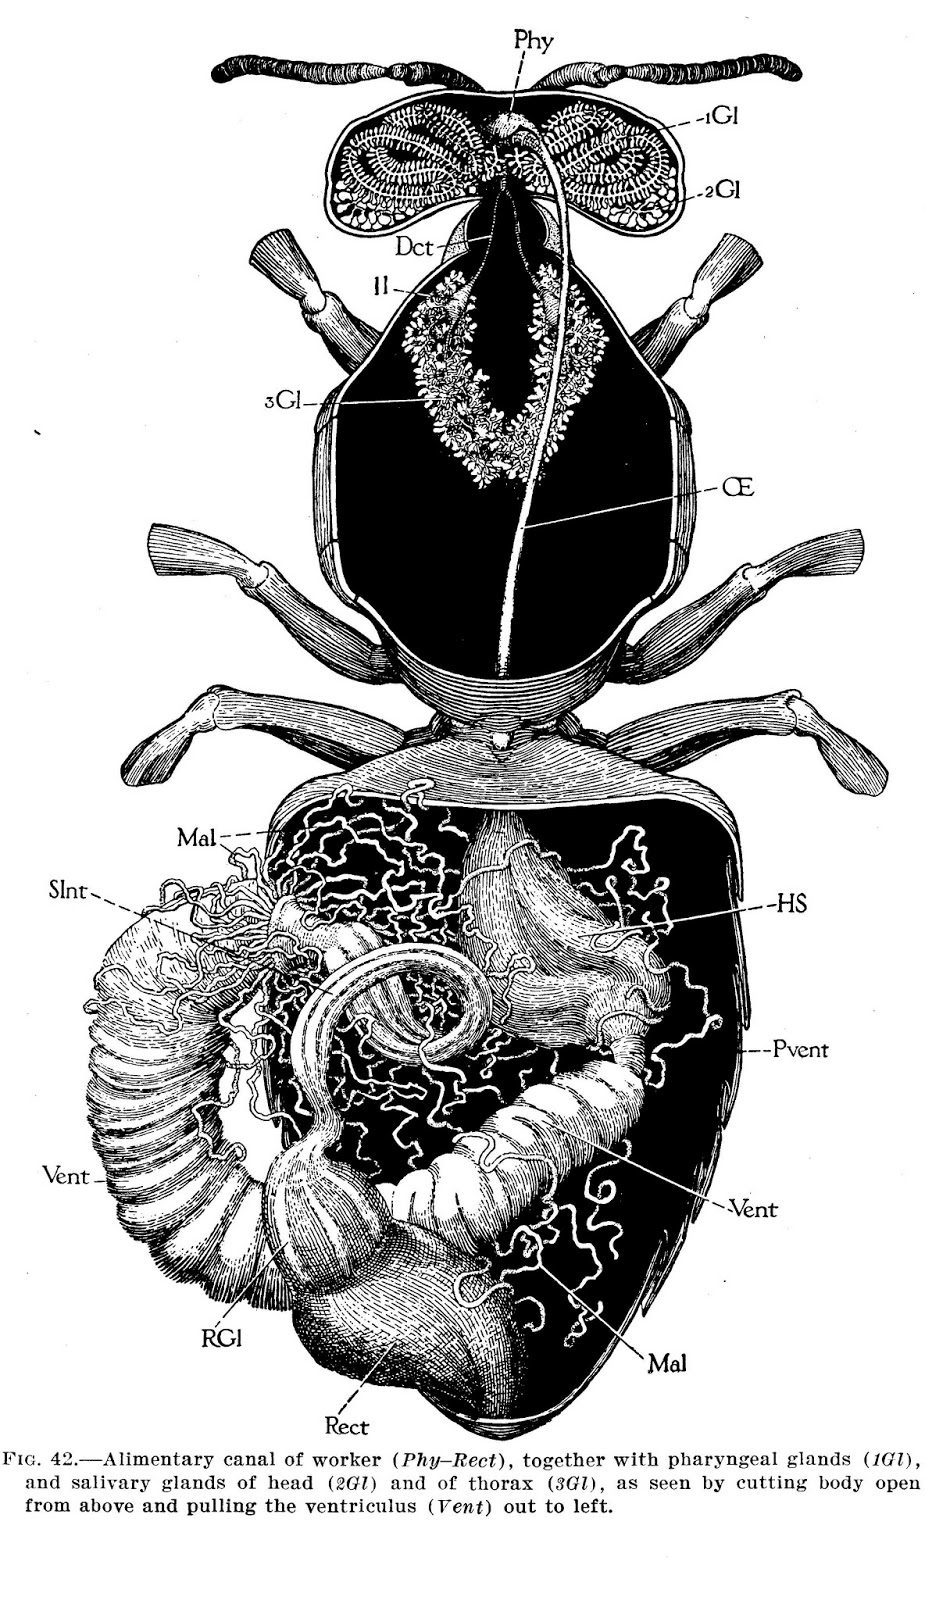 Bee Bugs Illustrations From Anatomy Of The Honey Bee By Robert E